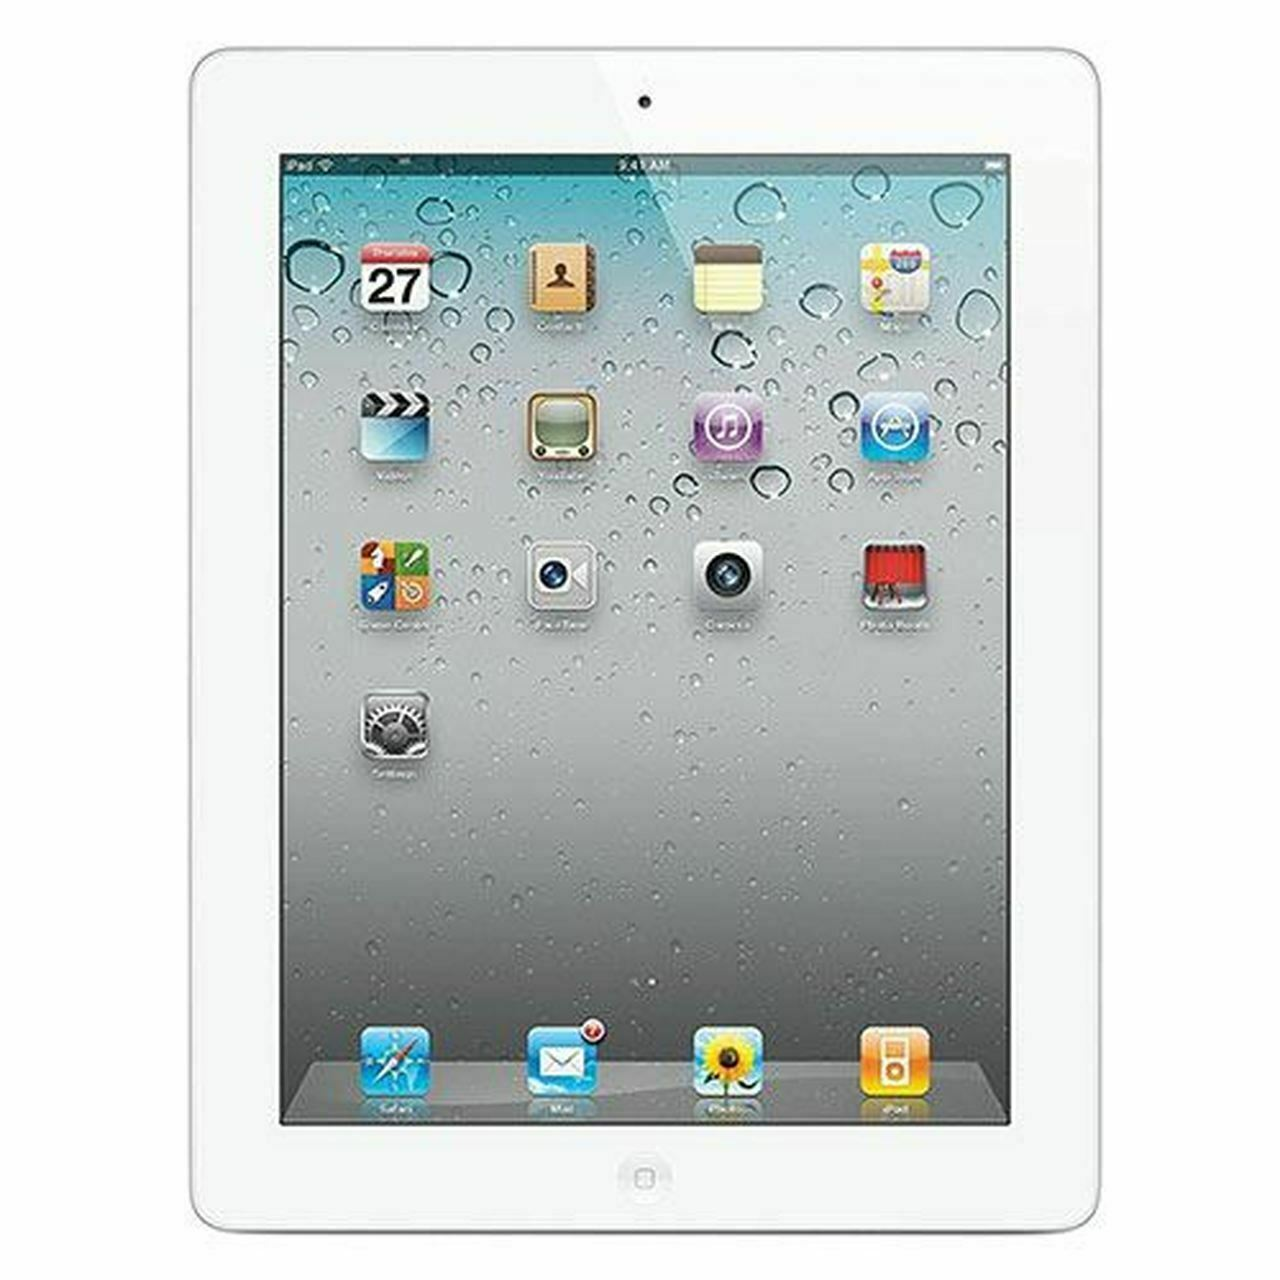 iPad: Apple iPad 4 16GB WiFi Bianco White Grado A+ Come Nuovo Rigenerato